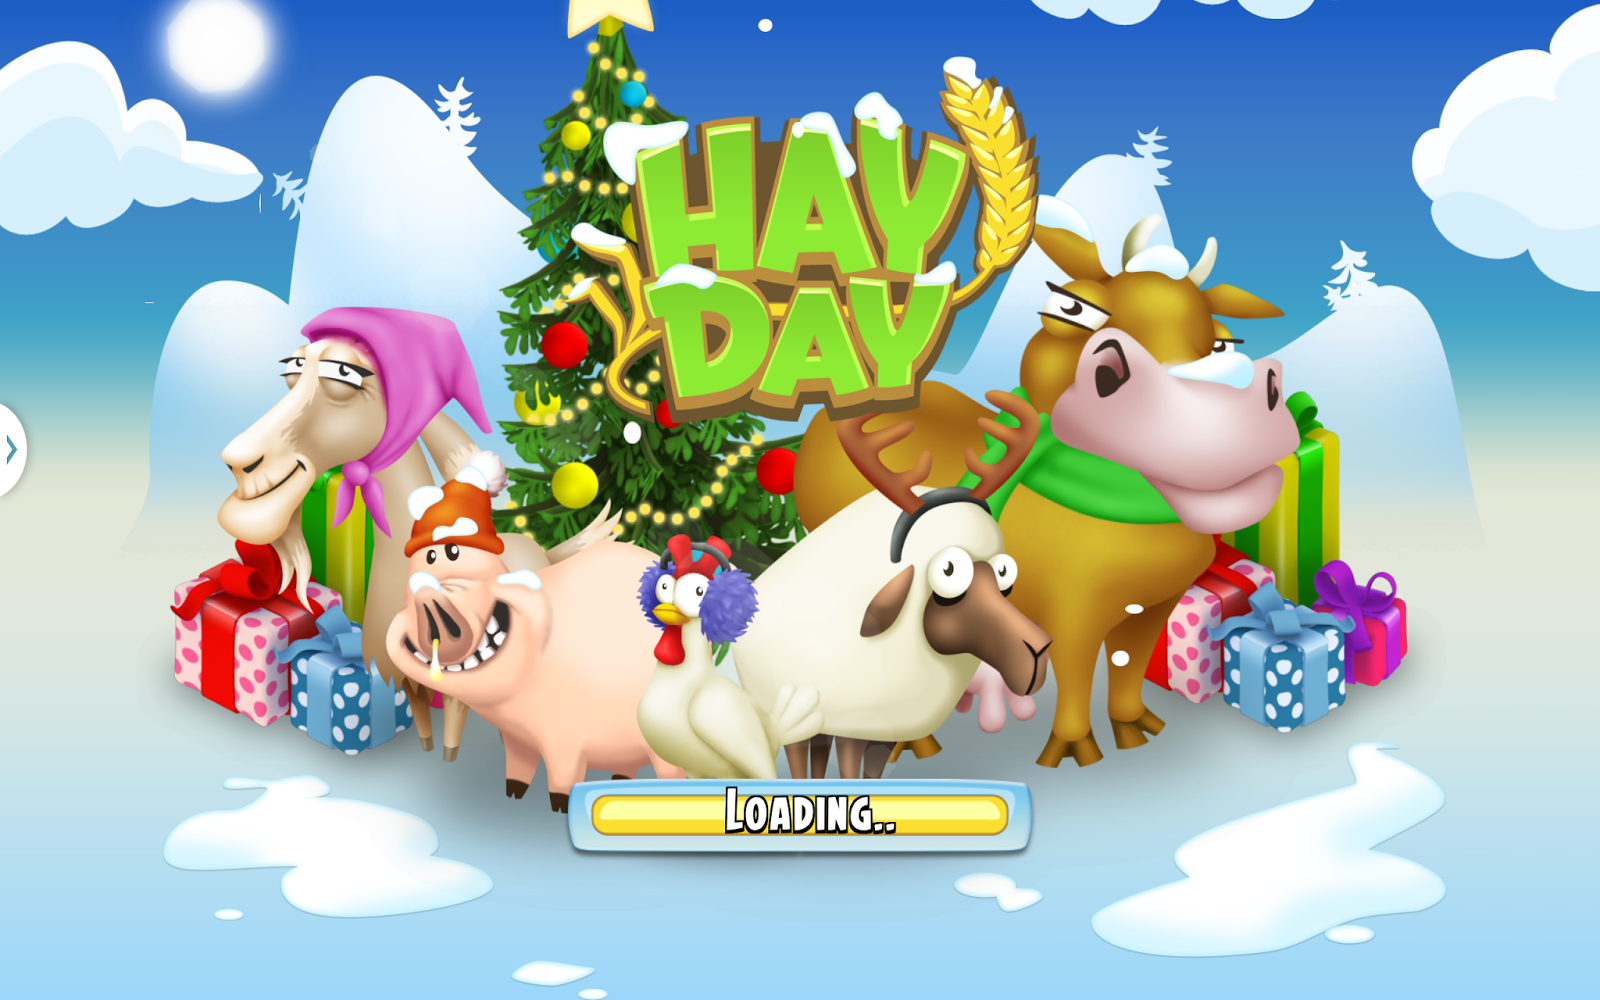 Holiday ASO App Store Optimization | Hay Day Christmas Skin | The ASO Project - App Marketing Optimization Agency